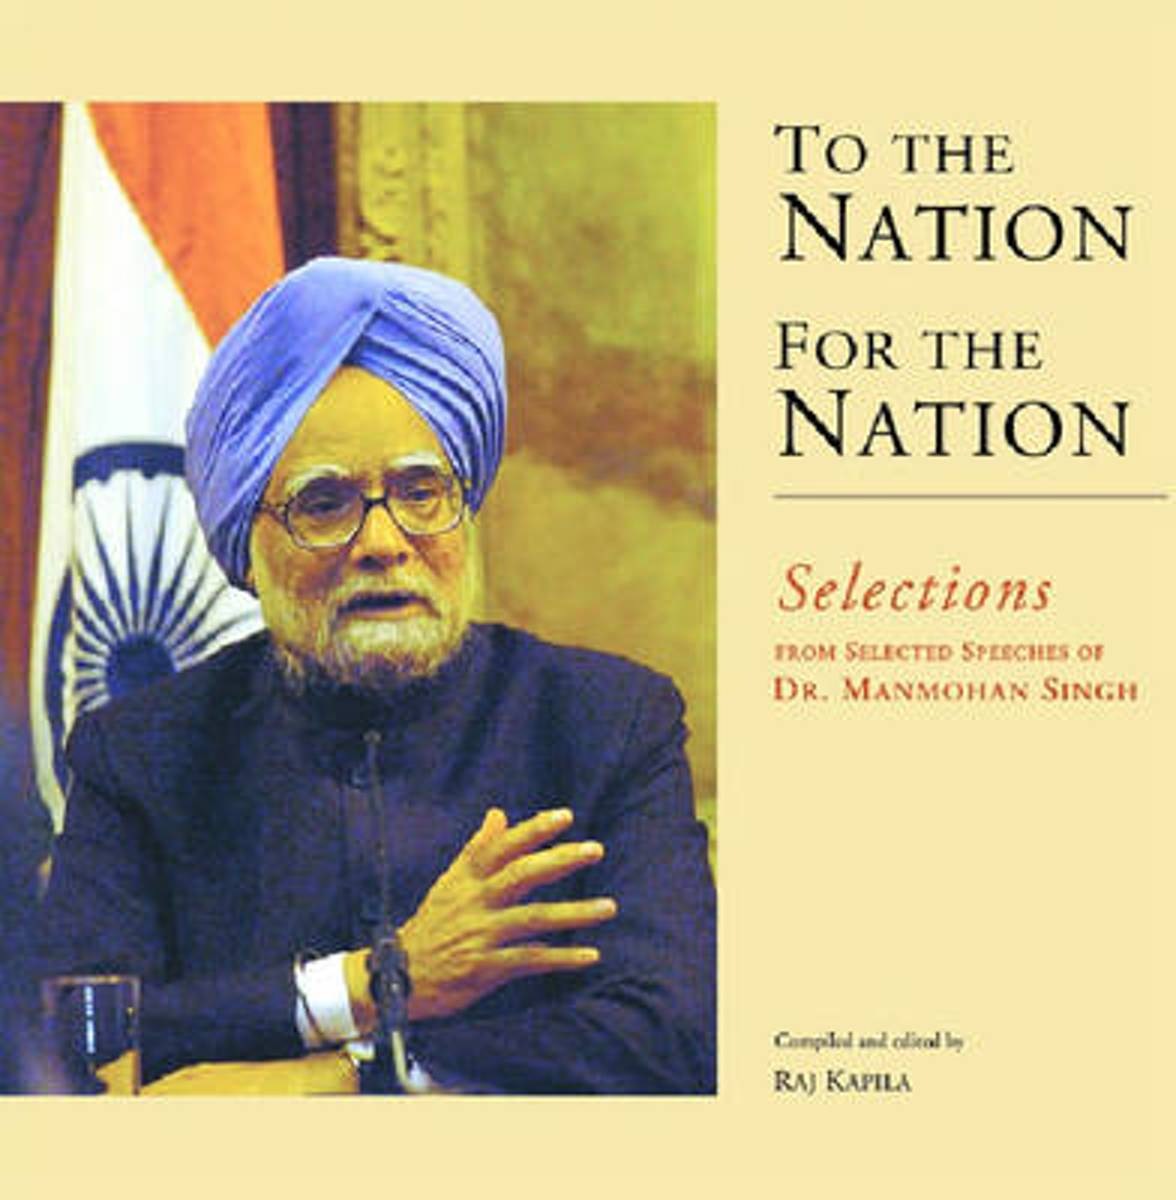 To the Nation for the Nation